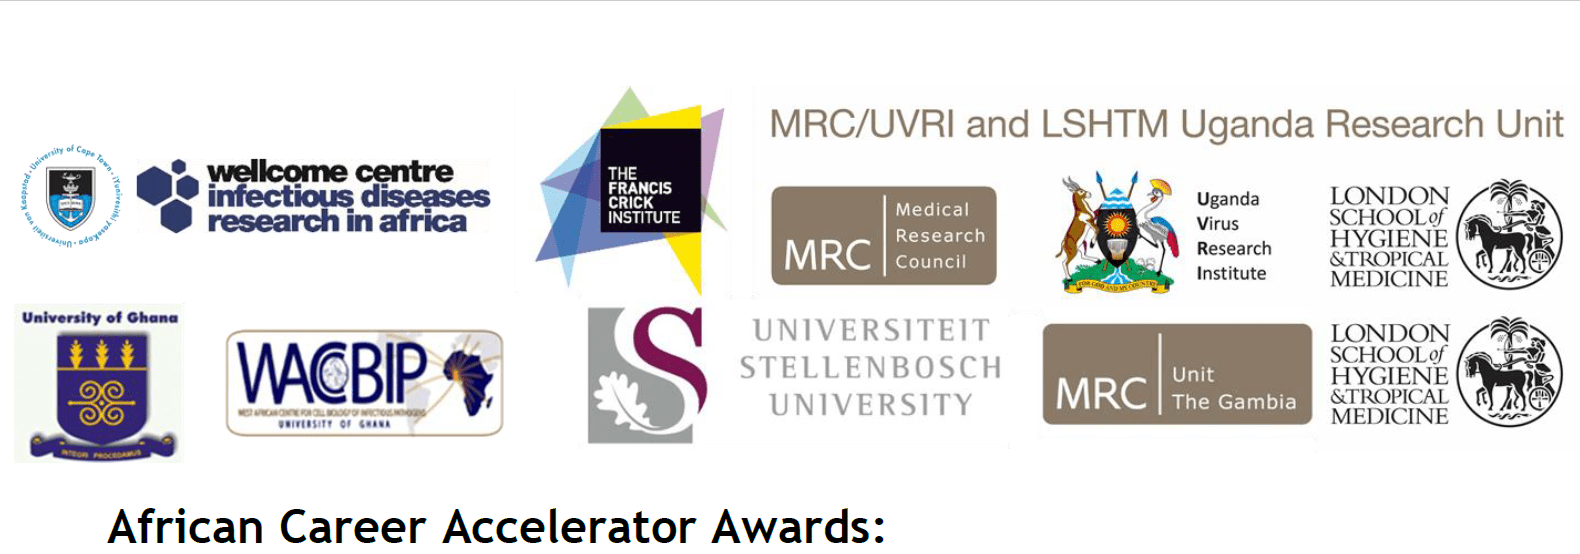 Crick African Network's African Profession Accelerator (CAN ACA) awards 2019 for African Post-Doctoral scientists